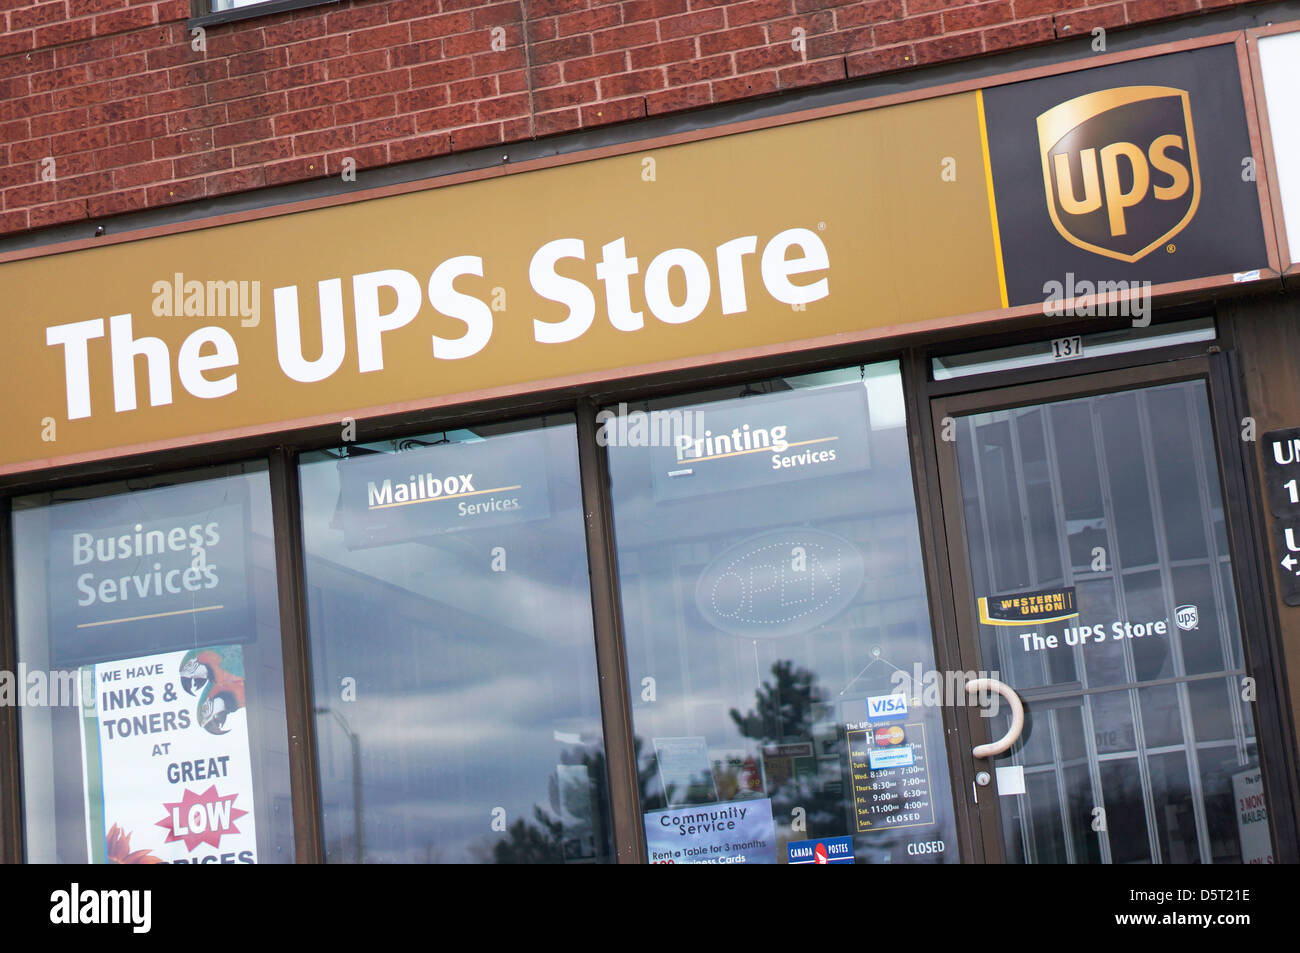 UPS, United Parcel Service Store - Stock Image